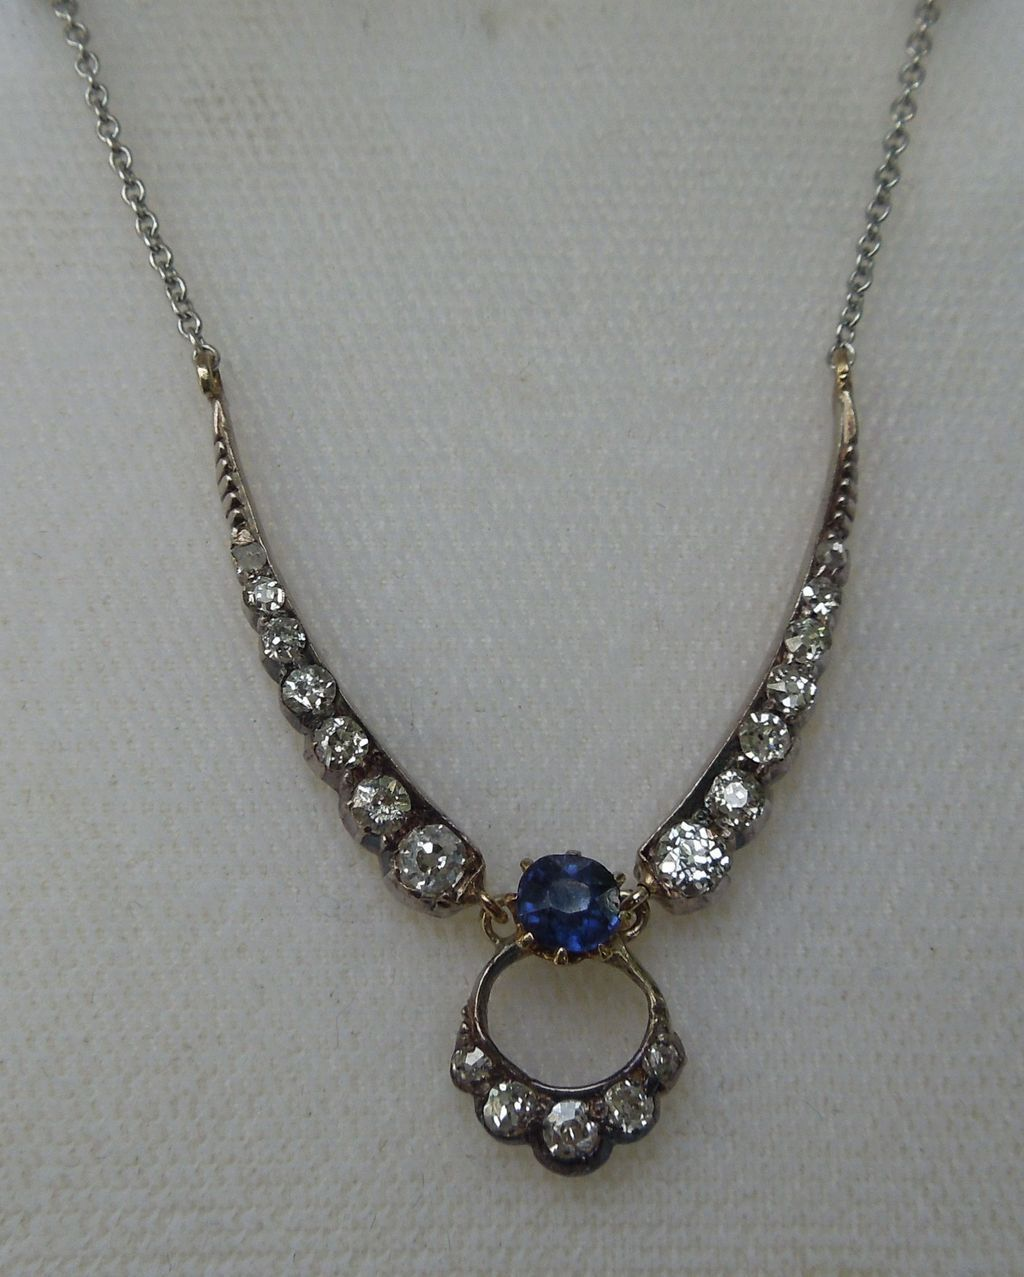 Rose Cut Diamond and Ceylon Sapphire Pendant, Late Victorian